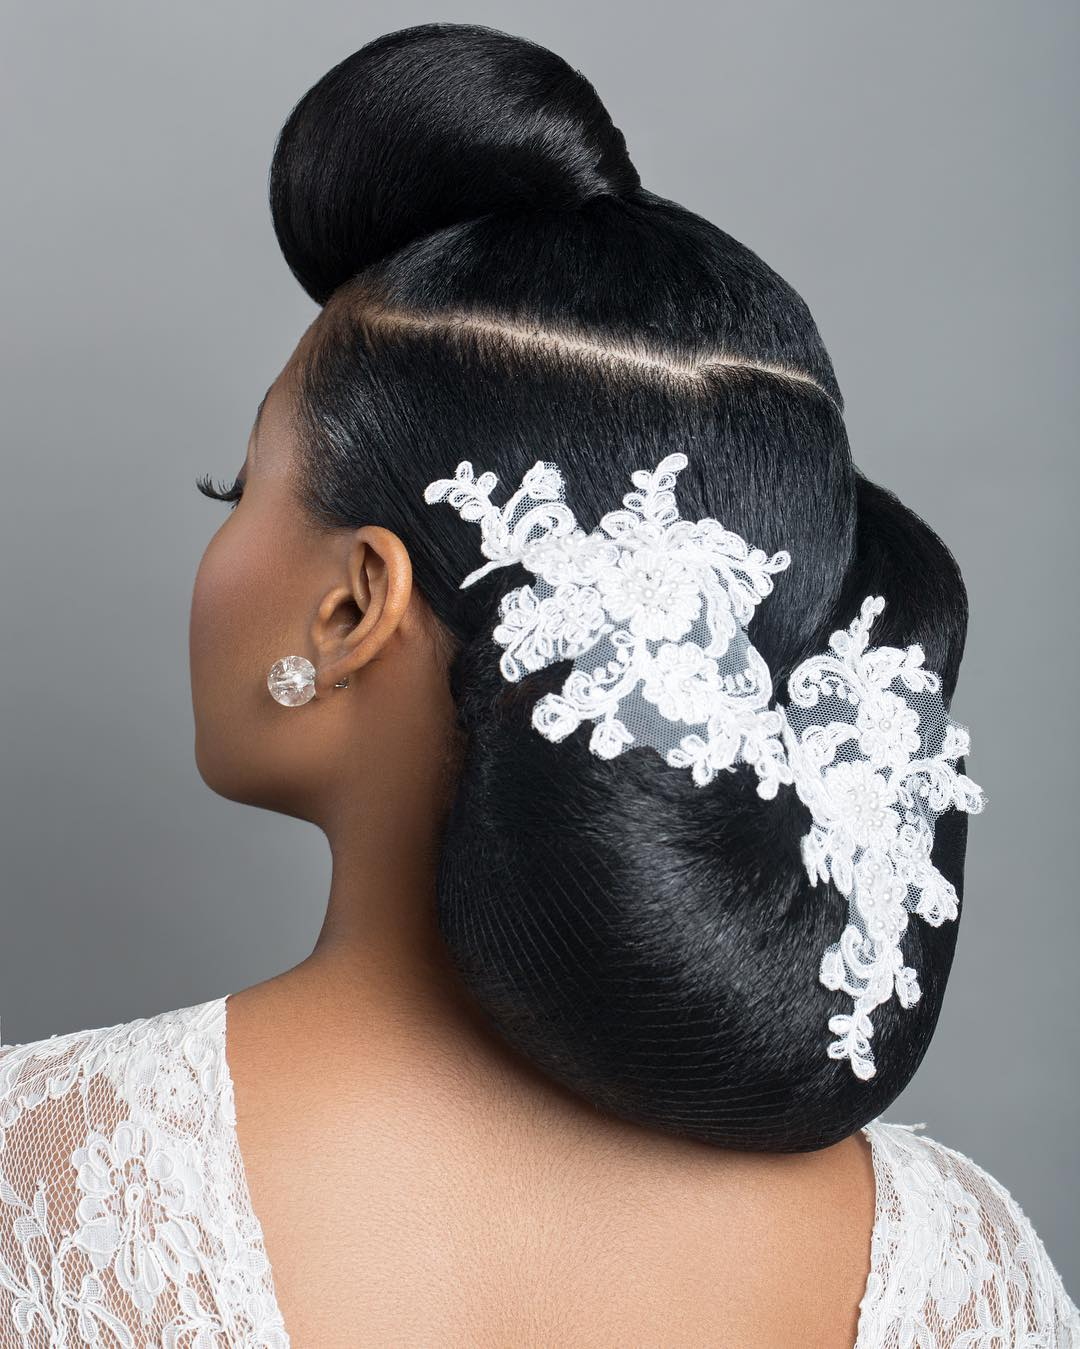 Hairstyles For Weddings Bridesmaid African American: These Are Not Your Average Bridal Updos